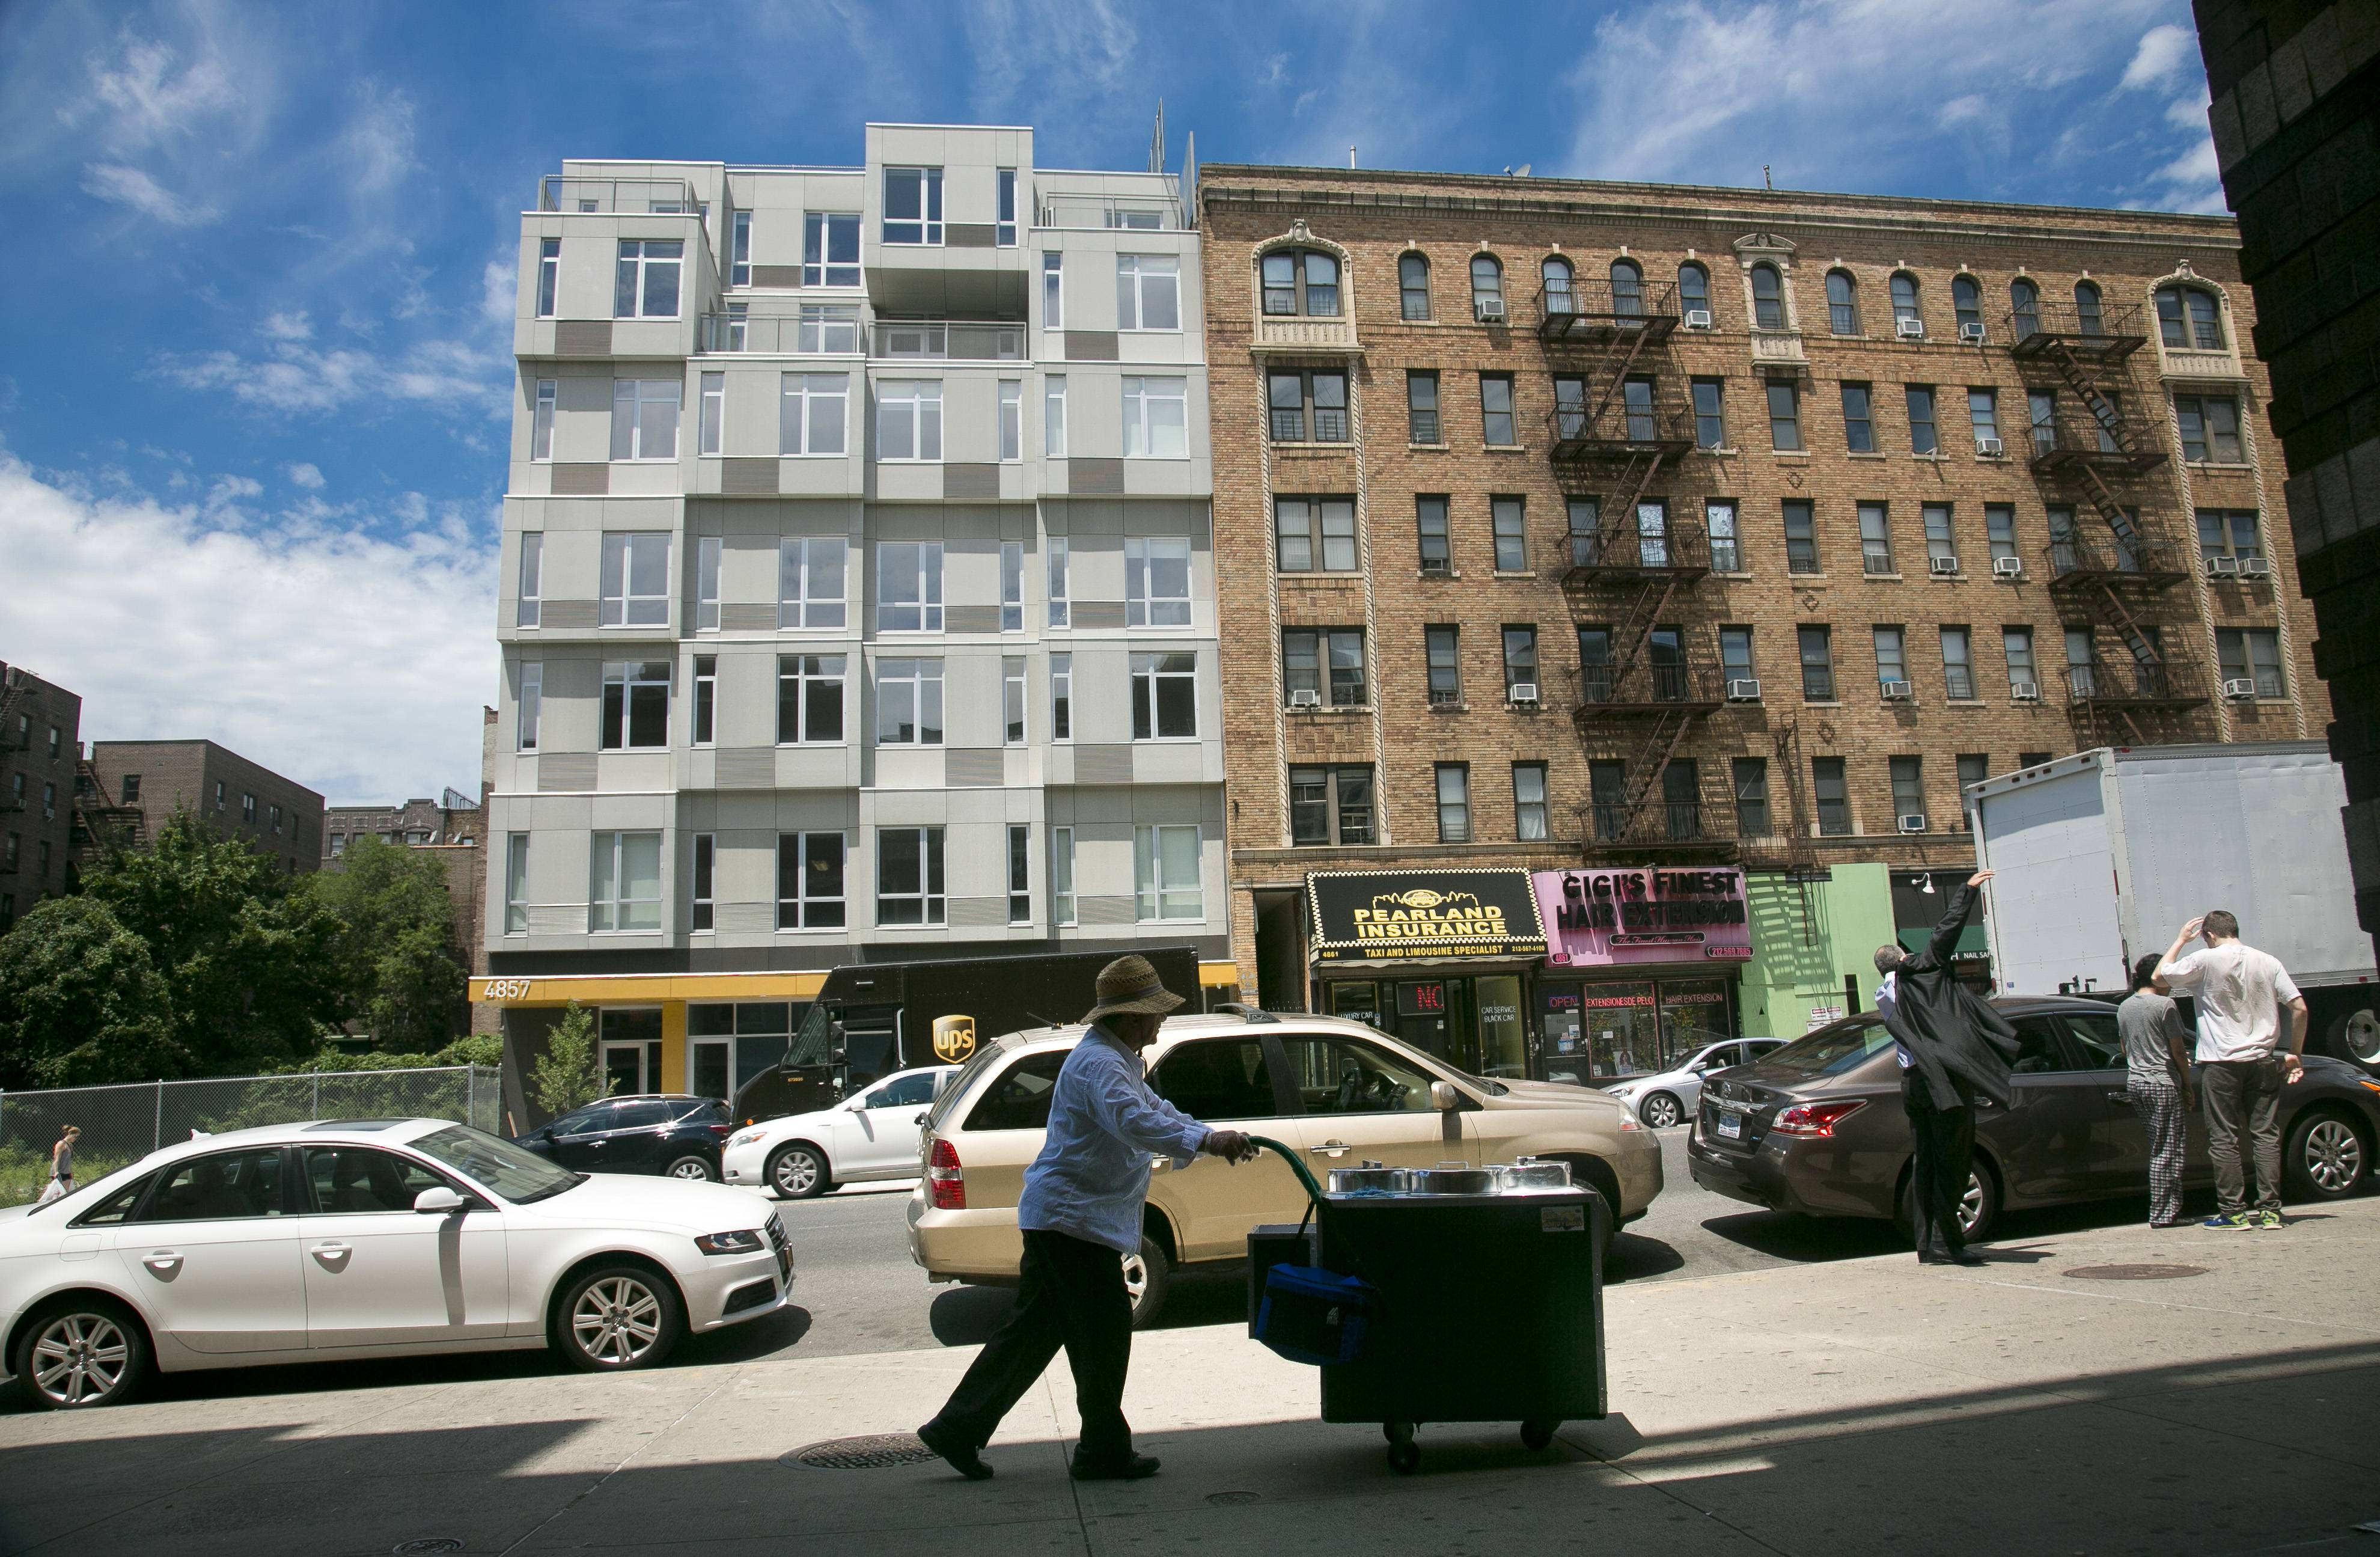 A seven-story modern modular apartment building called the Stack, left, is shown next to a decades-old residence in New York City. The Stack's 28 apartments were formed from 59 modules of rectangular components all 12.5 feet wide and 50 to 60 feet long. It's billed as the first multistory, modular-built apartment building to open in the city.